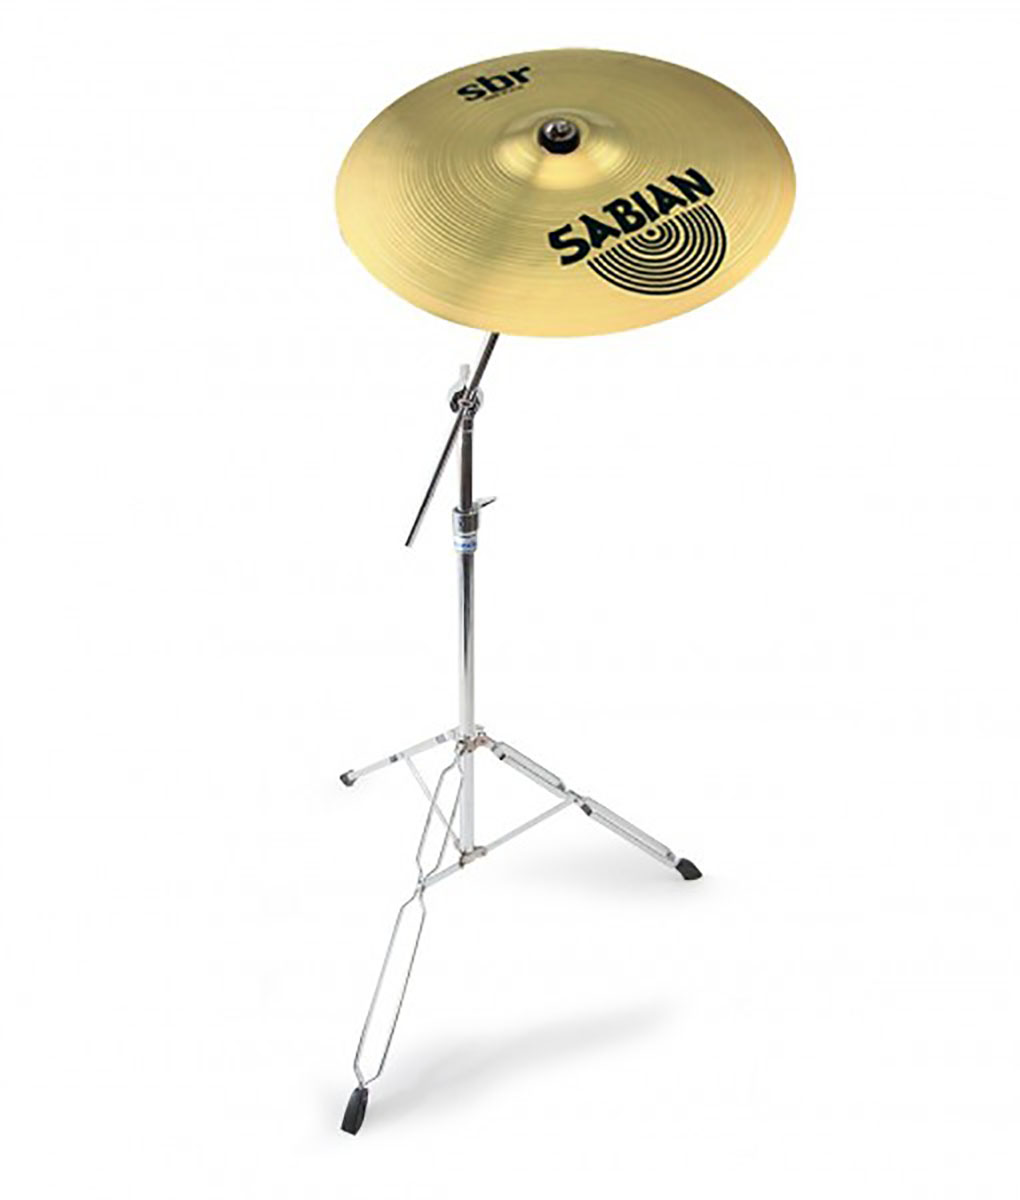 sabian 18 sbr crash ride cymbal with mapex tornado cymbal stand 6869983434363 ebay. Black Bedroom Furniture Sets. Home Design Ideas